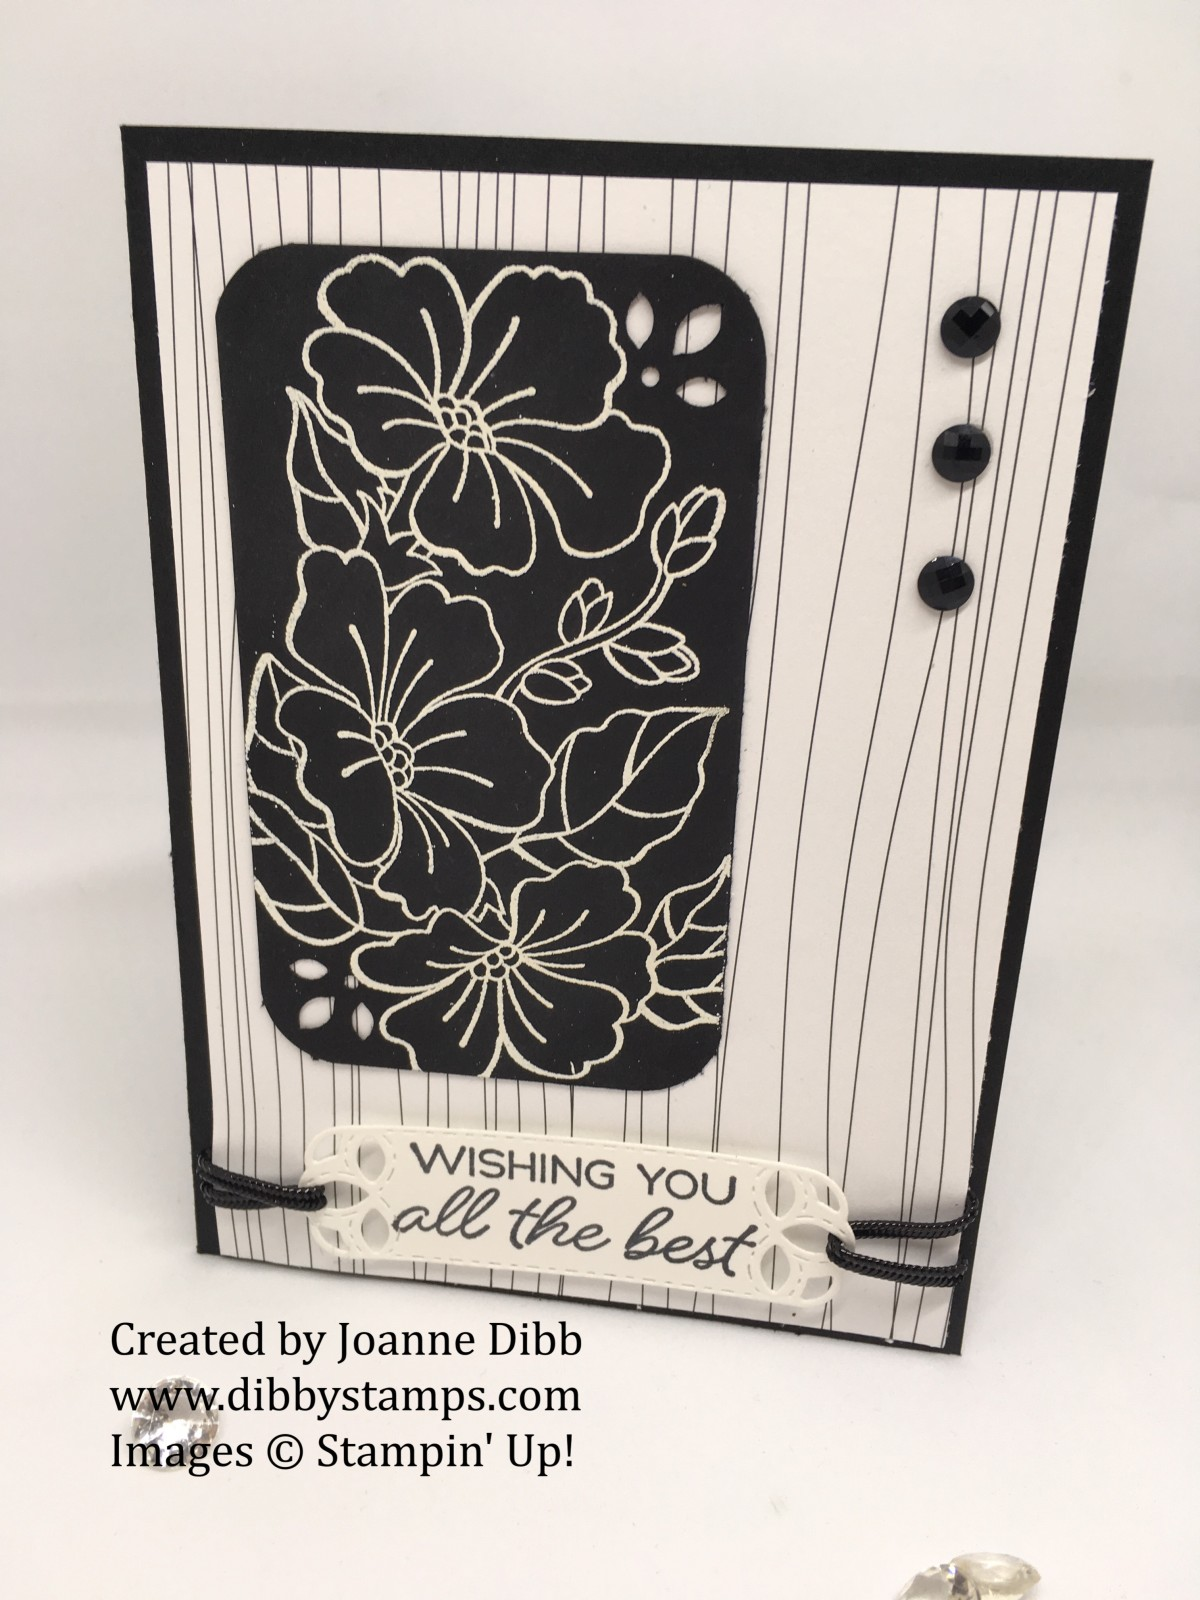 Monochromatic Floral card with Blended Seasons